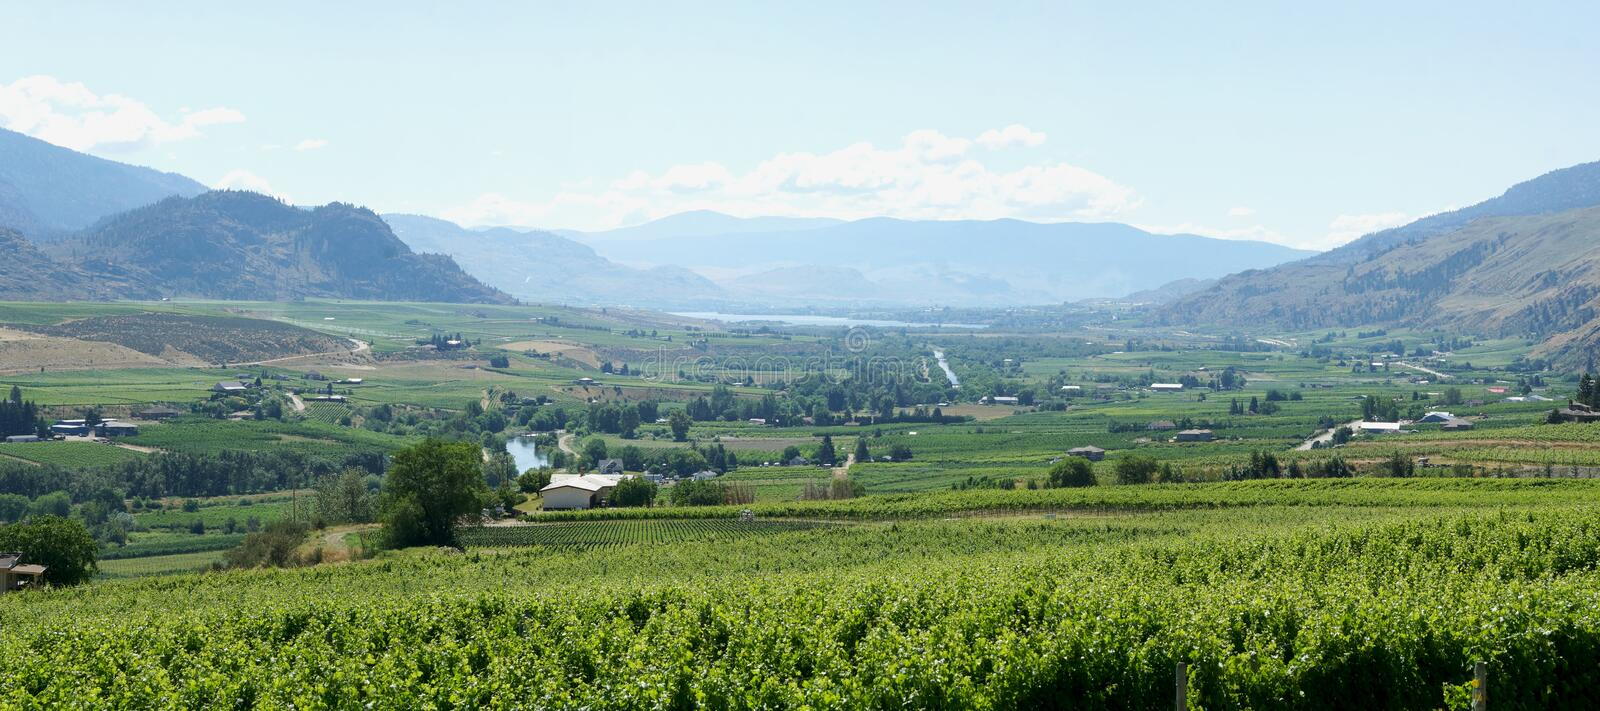 Beautiful Panoramic View Of The Golden Mile Bench in Oliver, British Columbia. A wide angle view taken from the Checkmate vineyard tasting room in Oliver, BC stock photography